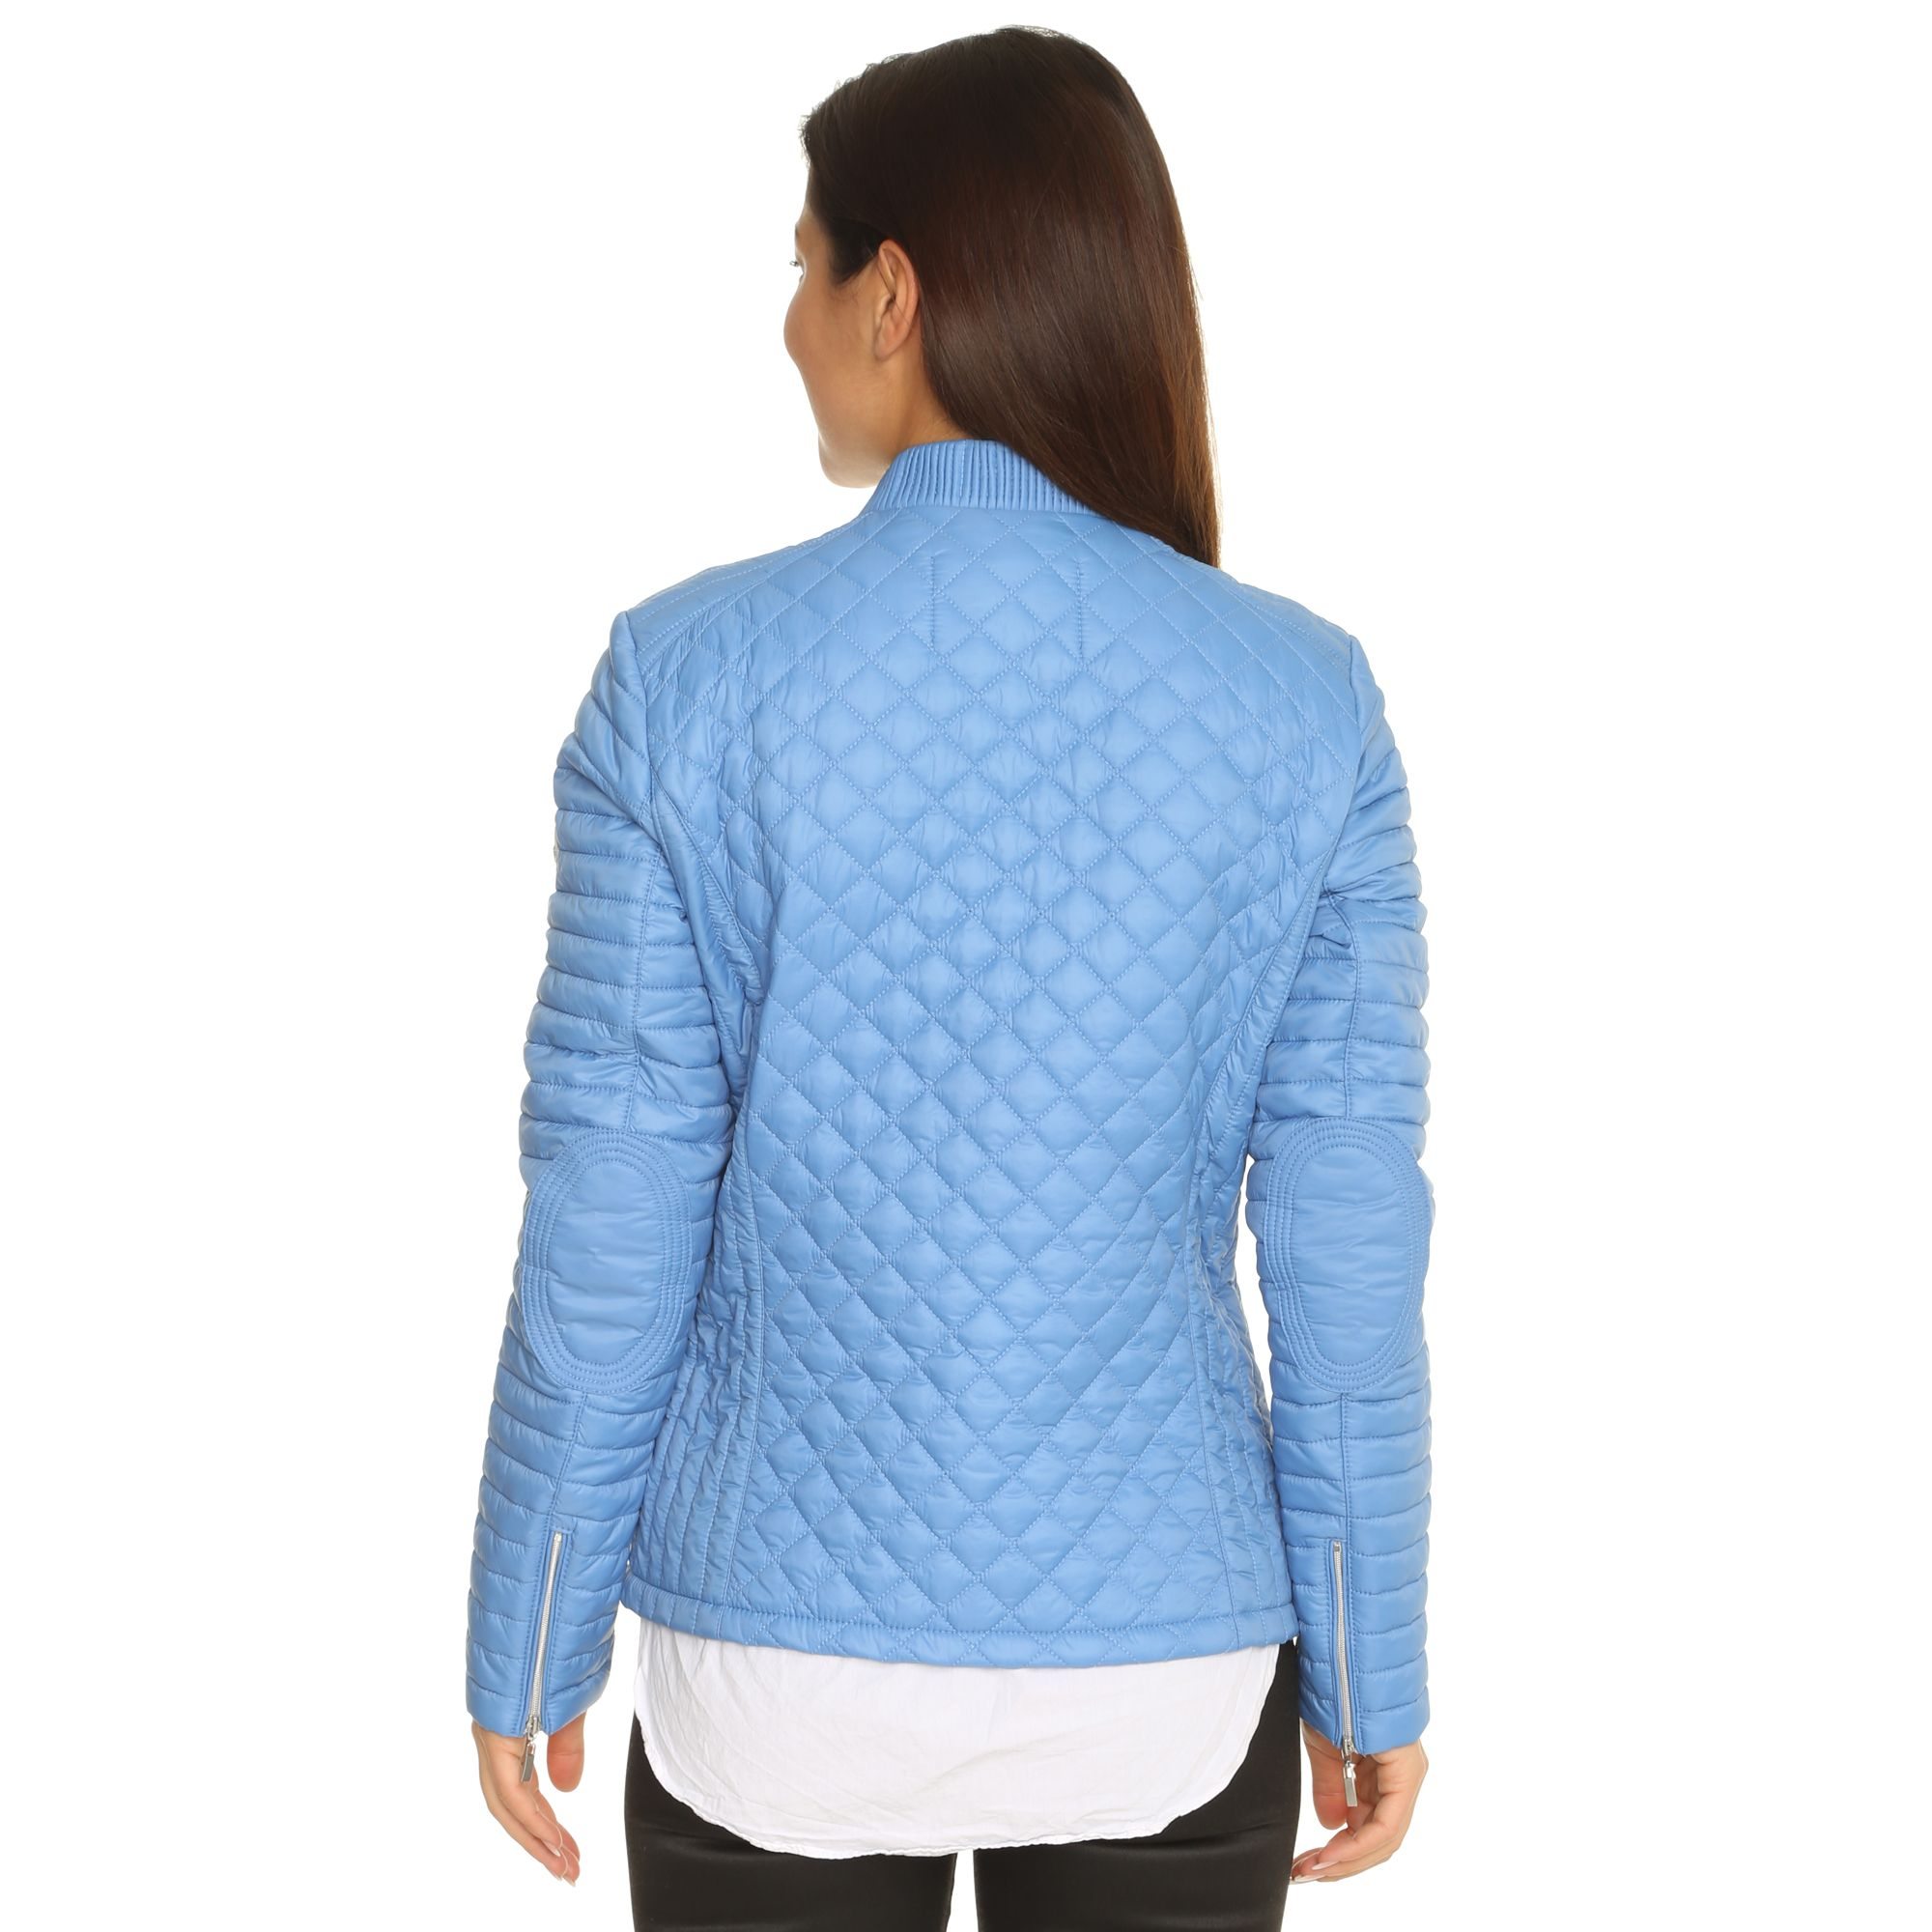 Qvc Garten Chic Frieda Loves Nyc Steppjacke Bikerstyle Steppvariationen 2